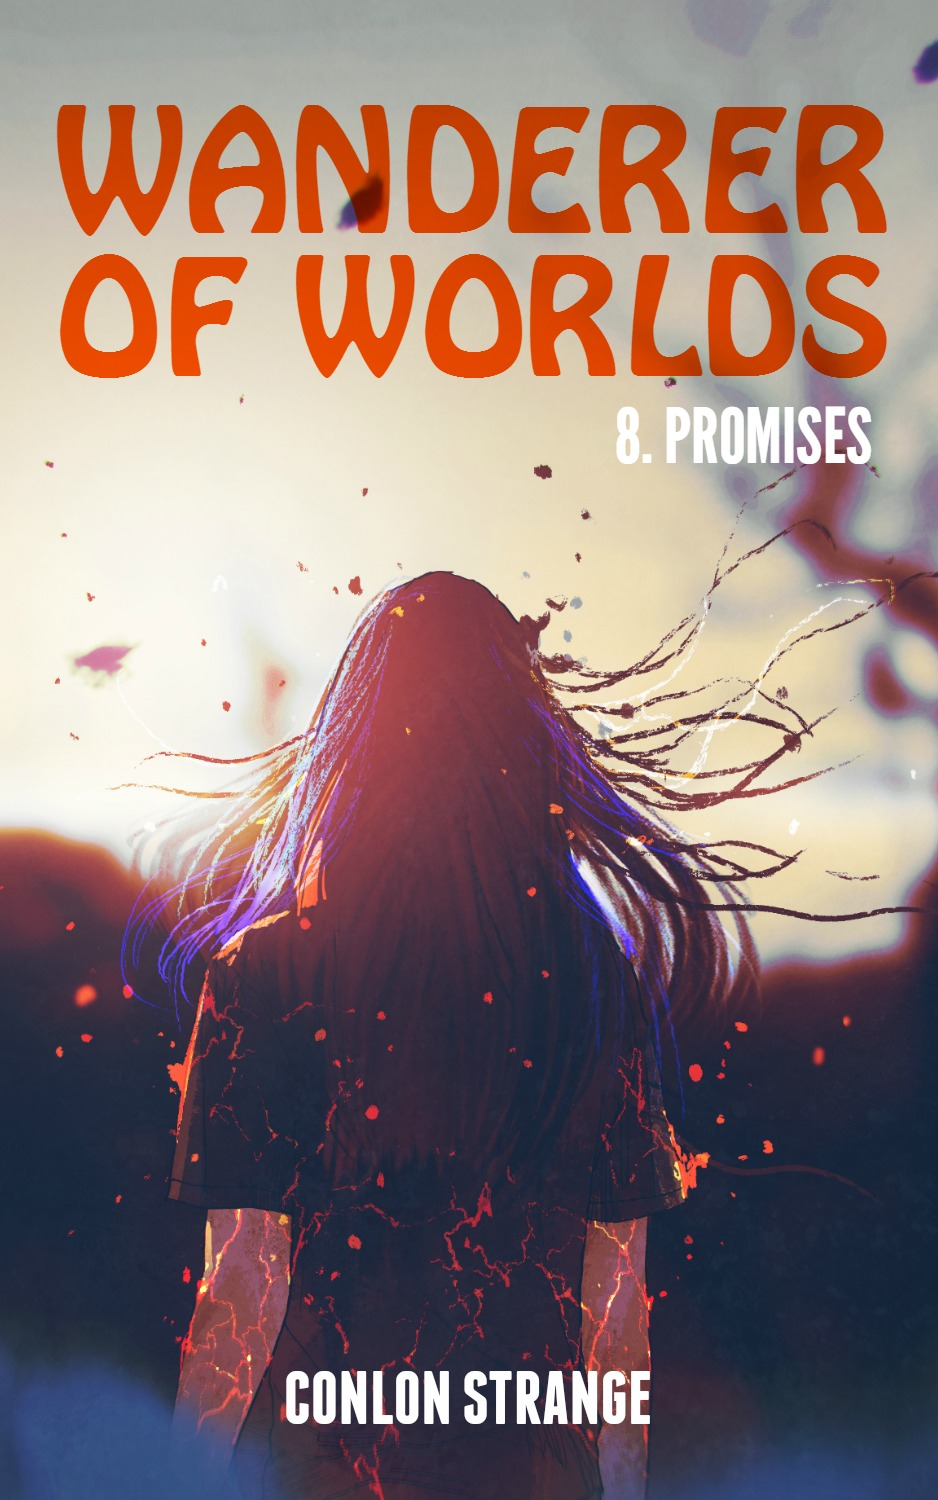 Wanderer Of Worlds  PROMISES